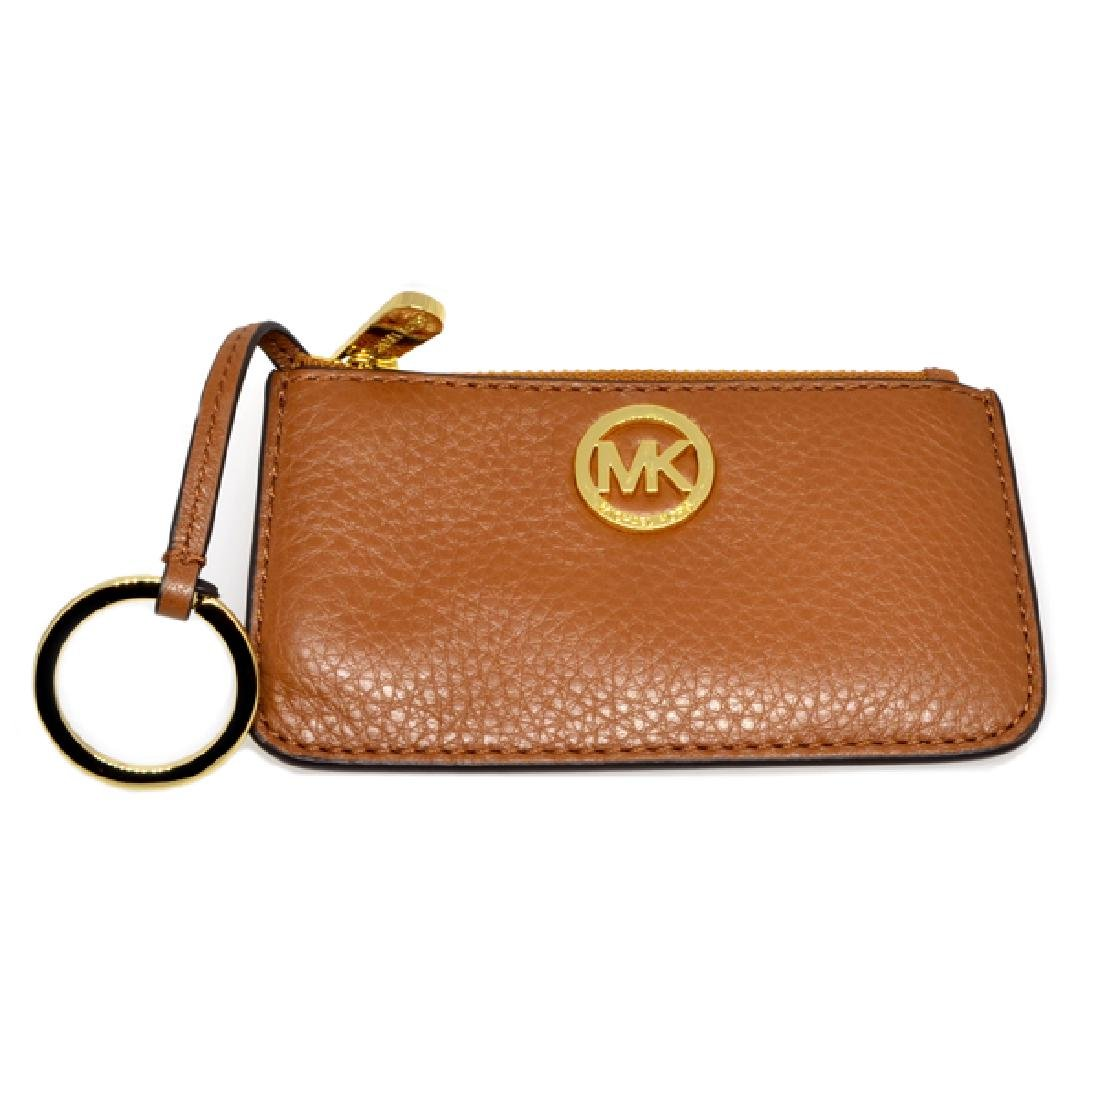 ^Brand New Michael Kors Fulton Luggage Leather Key